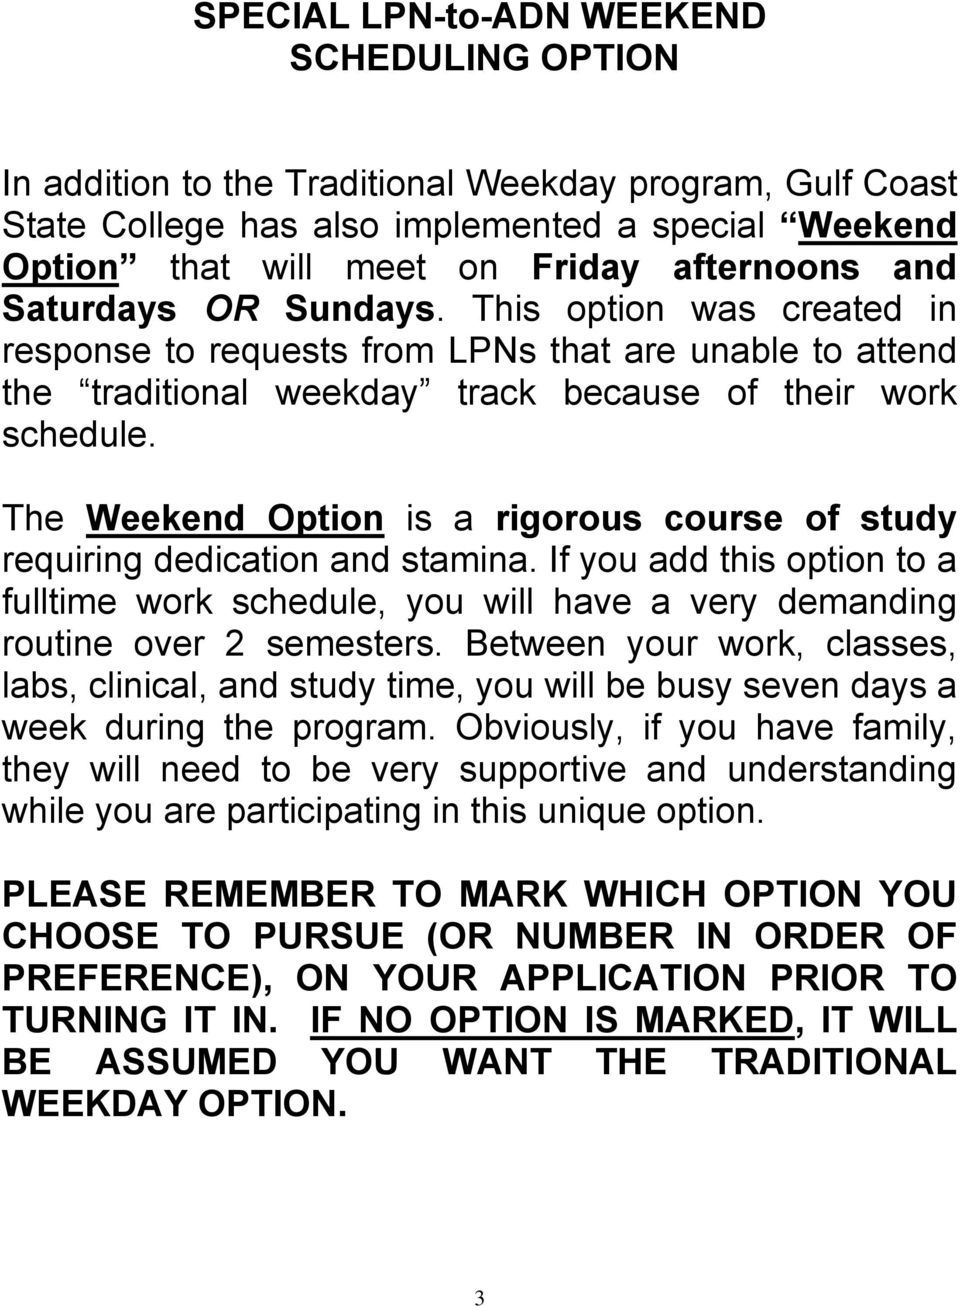 The Weekend Option is a rigorous course of study requiring dedication and stamina. If you add this option to a fulltime work schedule, you will have a very demanding routine over 2 semesters.